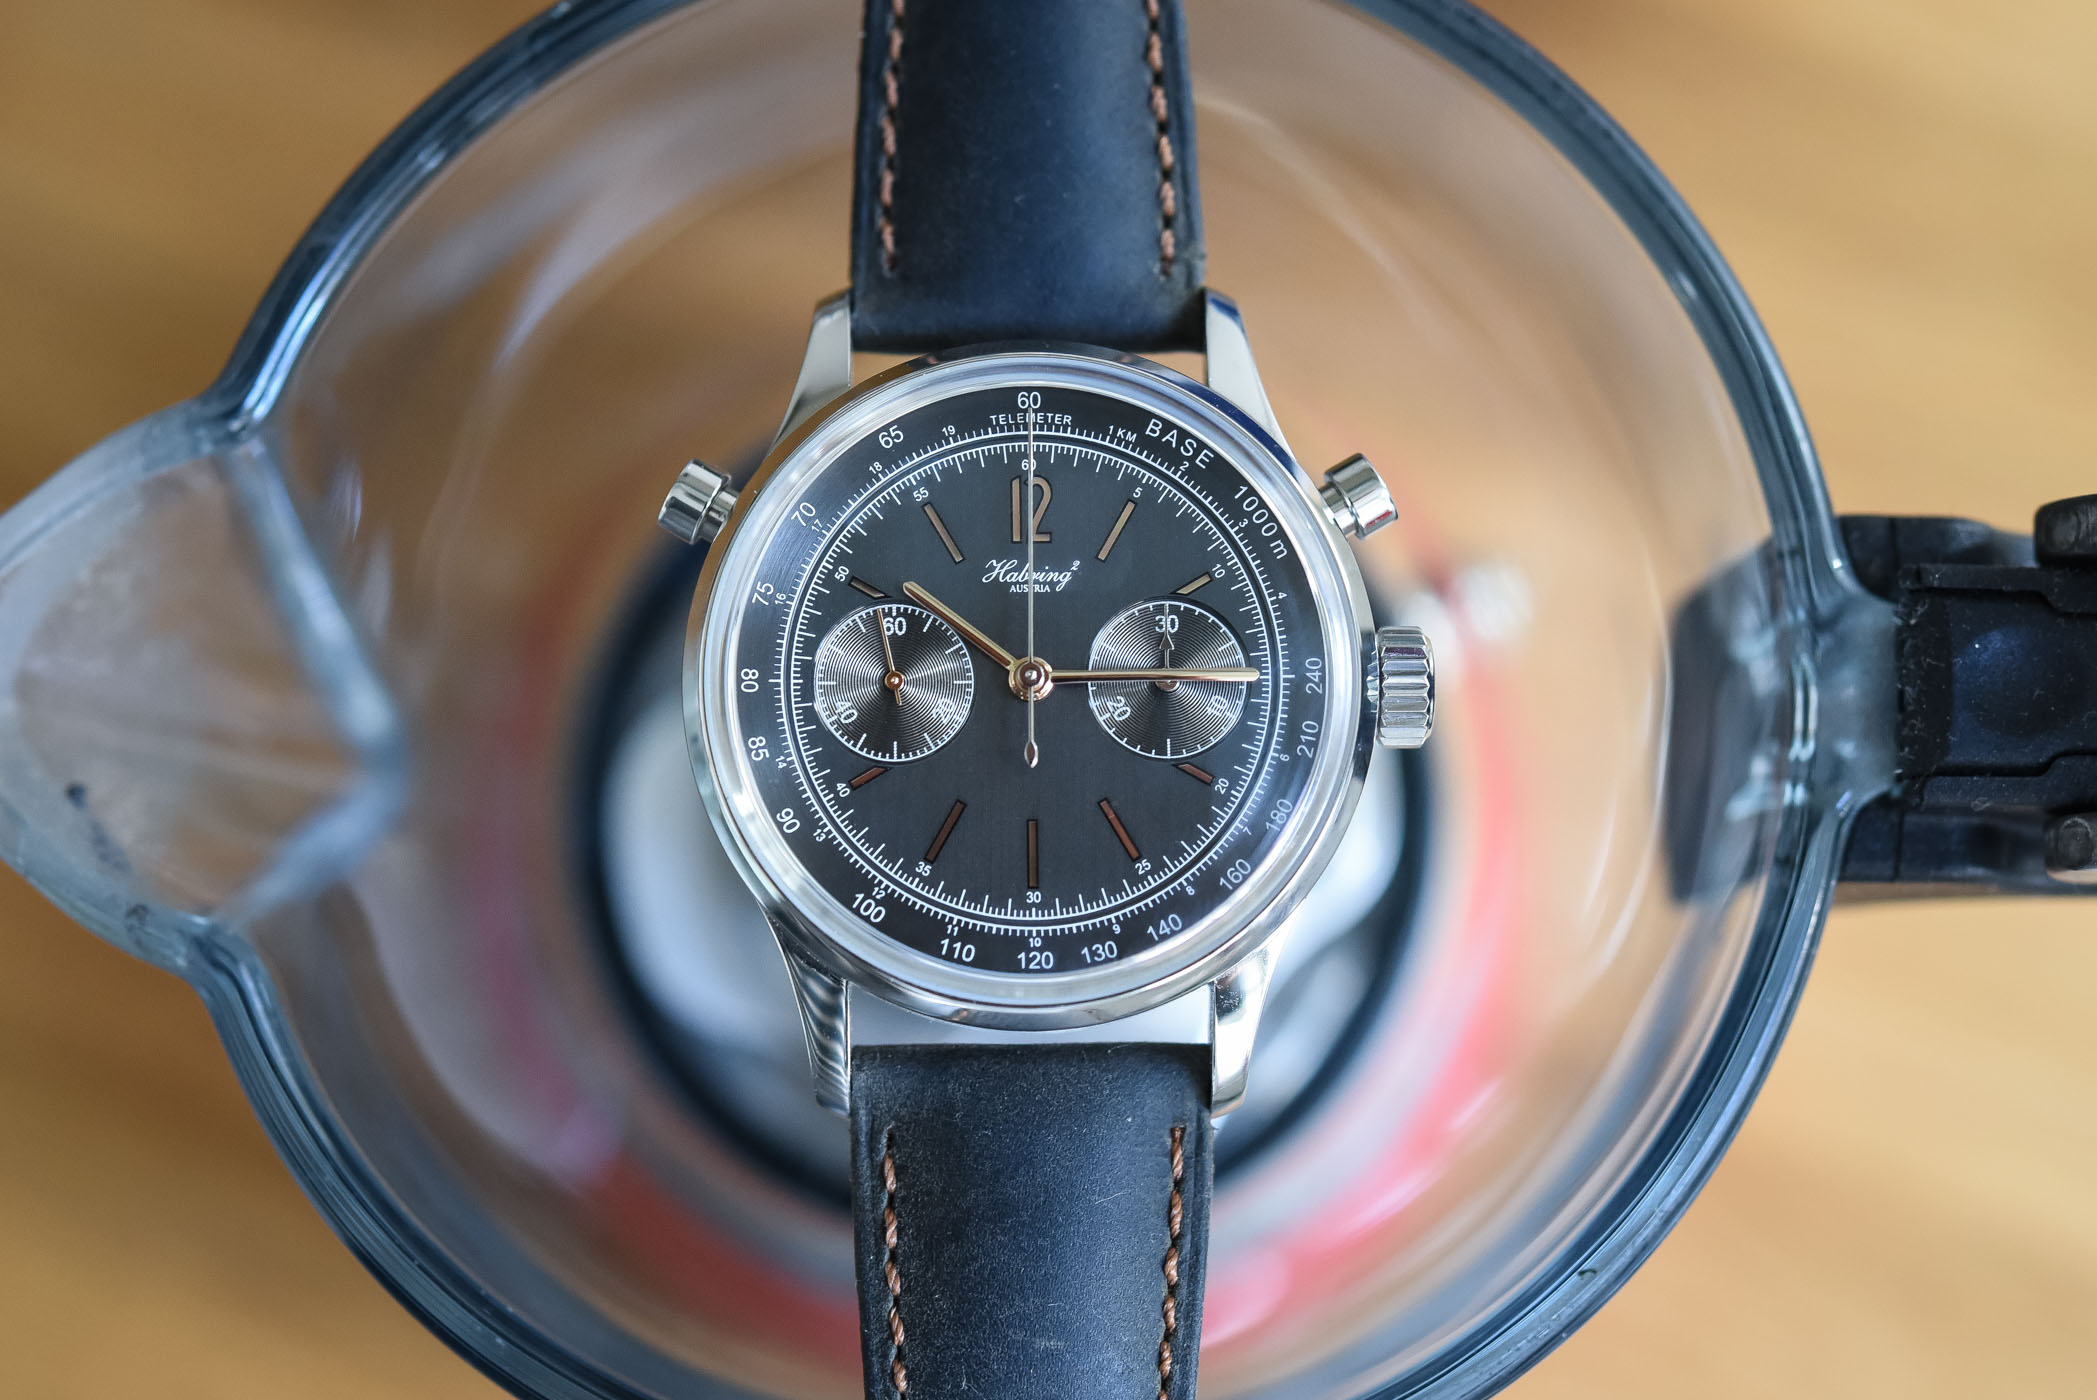 Habring2 Doppel-Felix split-seconds doppelchronograph - review